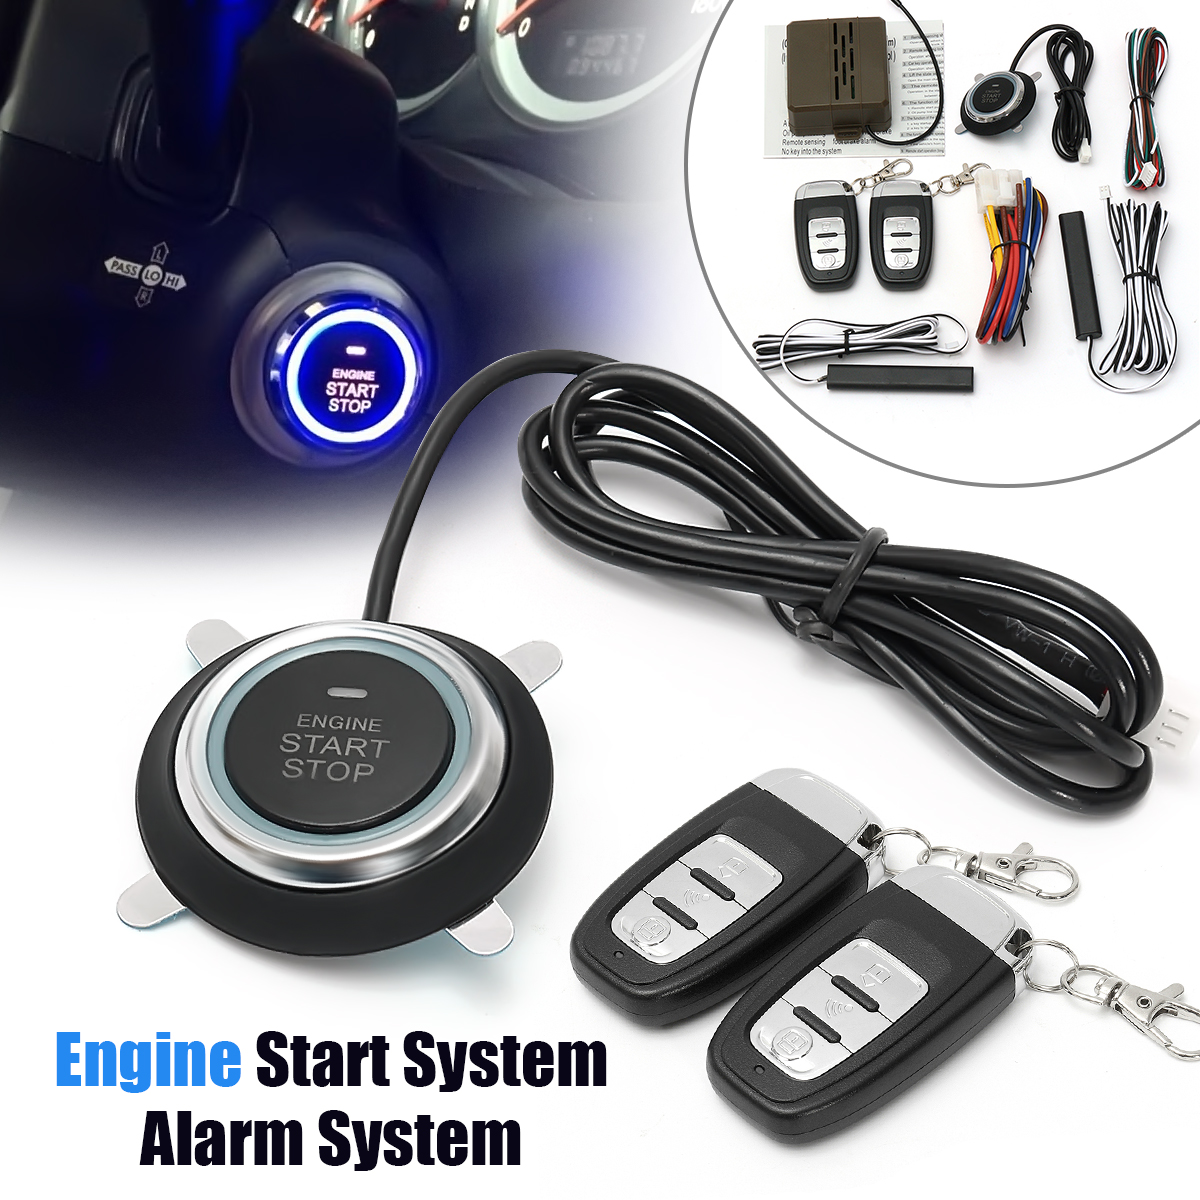 Car Push Button Start Stop System Mulitifuntion Smart E Models Remote Control Car Alarm Start Keyless Entry System Accessories easyguard pke car alarm system remote engine start stop shock sensor push button start stop window rise up automatically